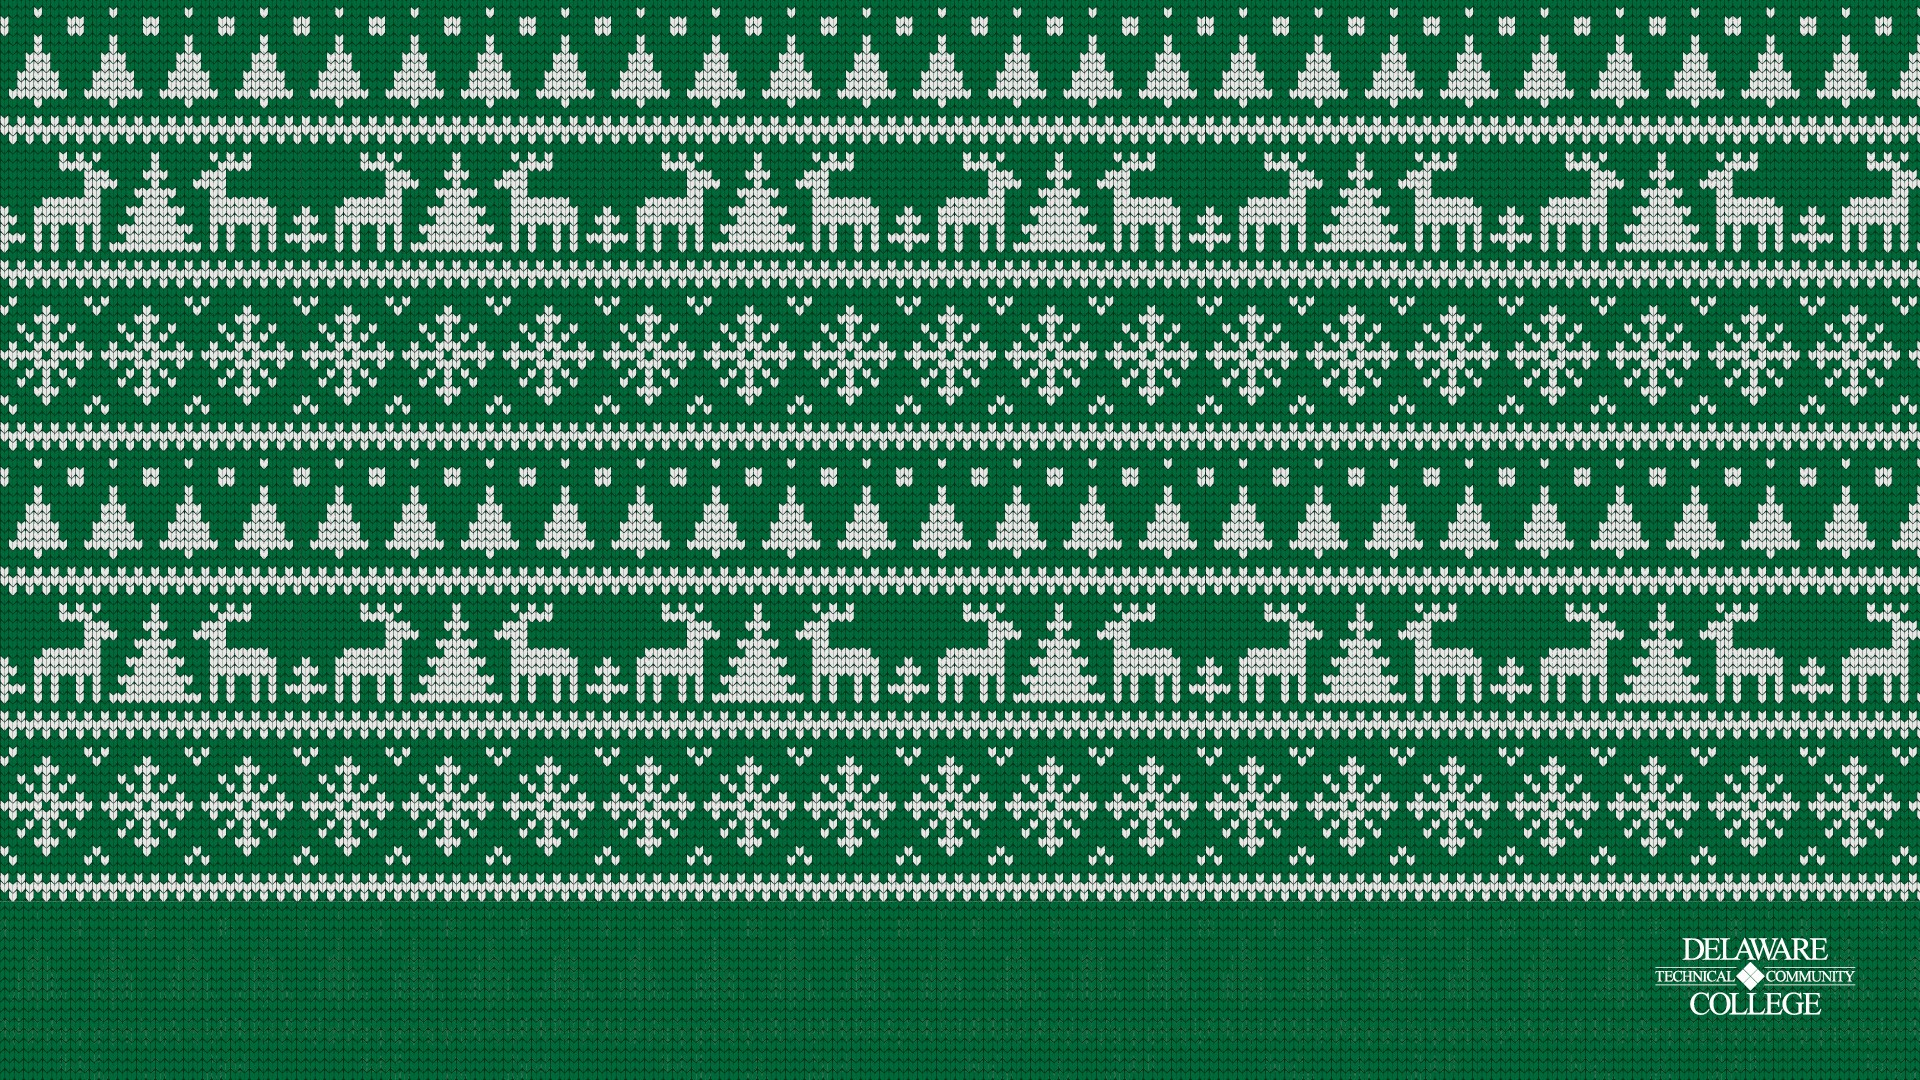 Green and white reindeer sweater texture with the Delaware Tech logo at the bottom right